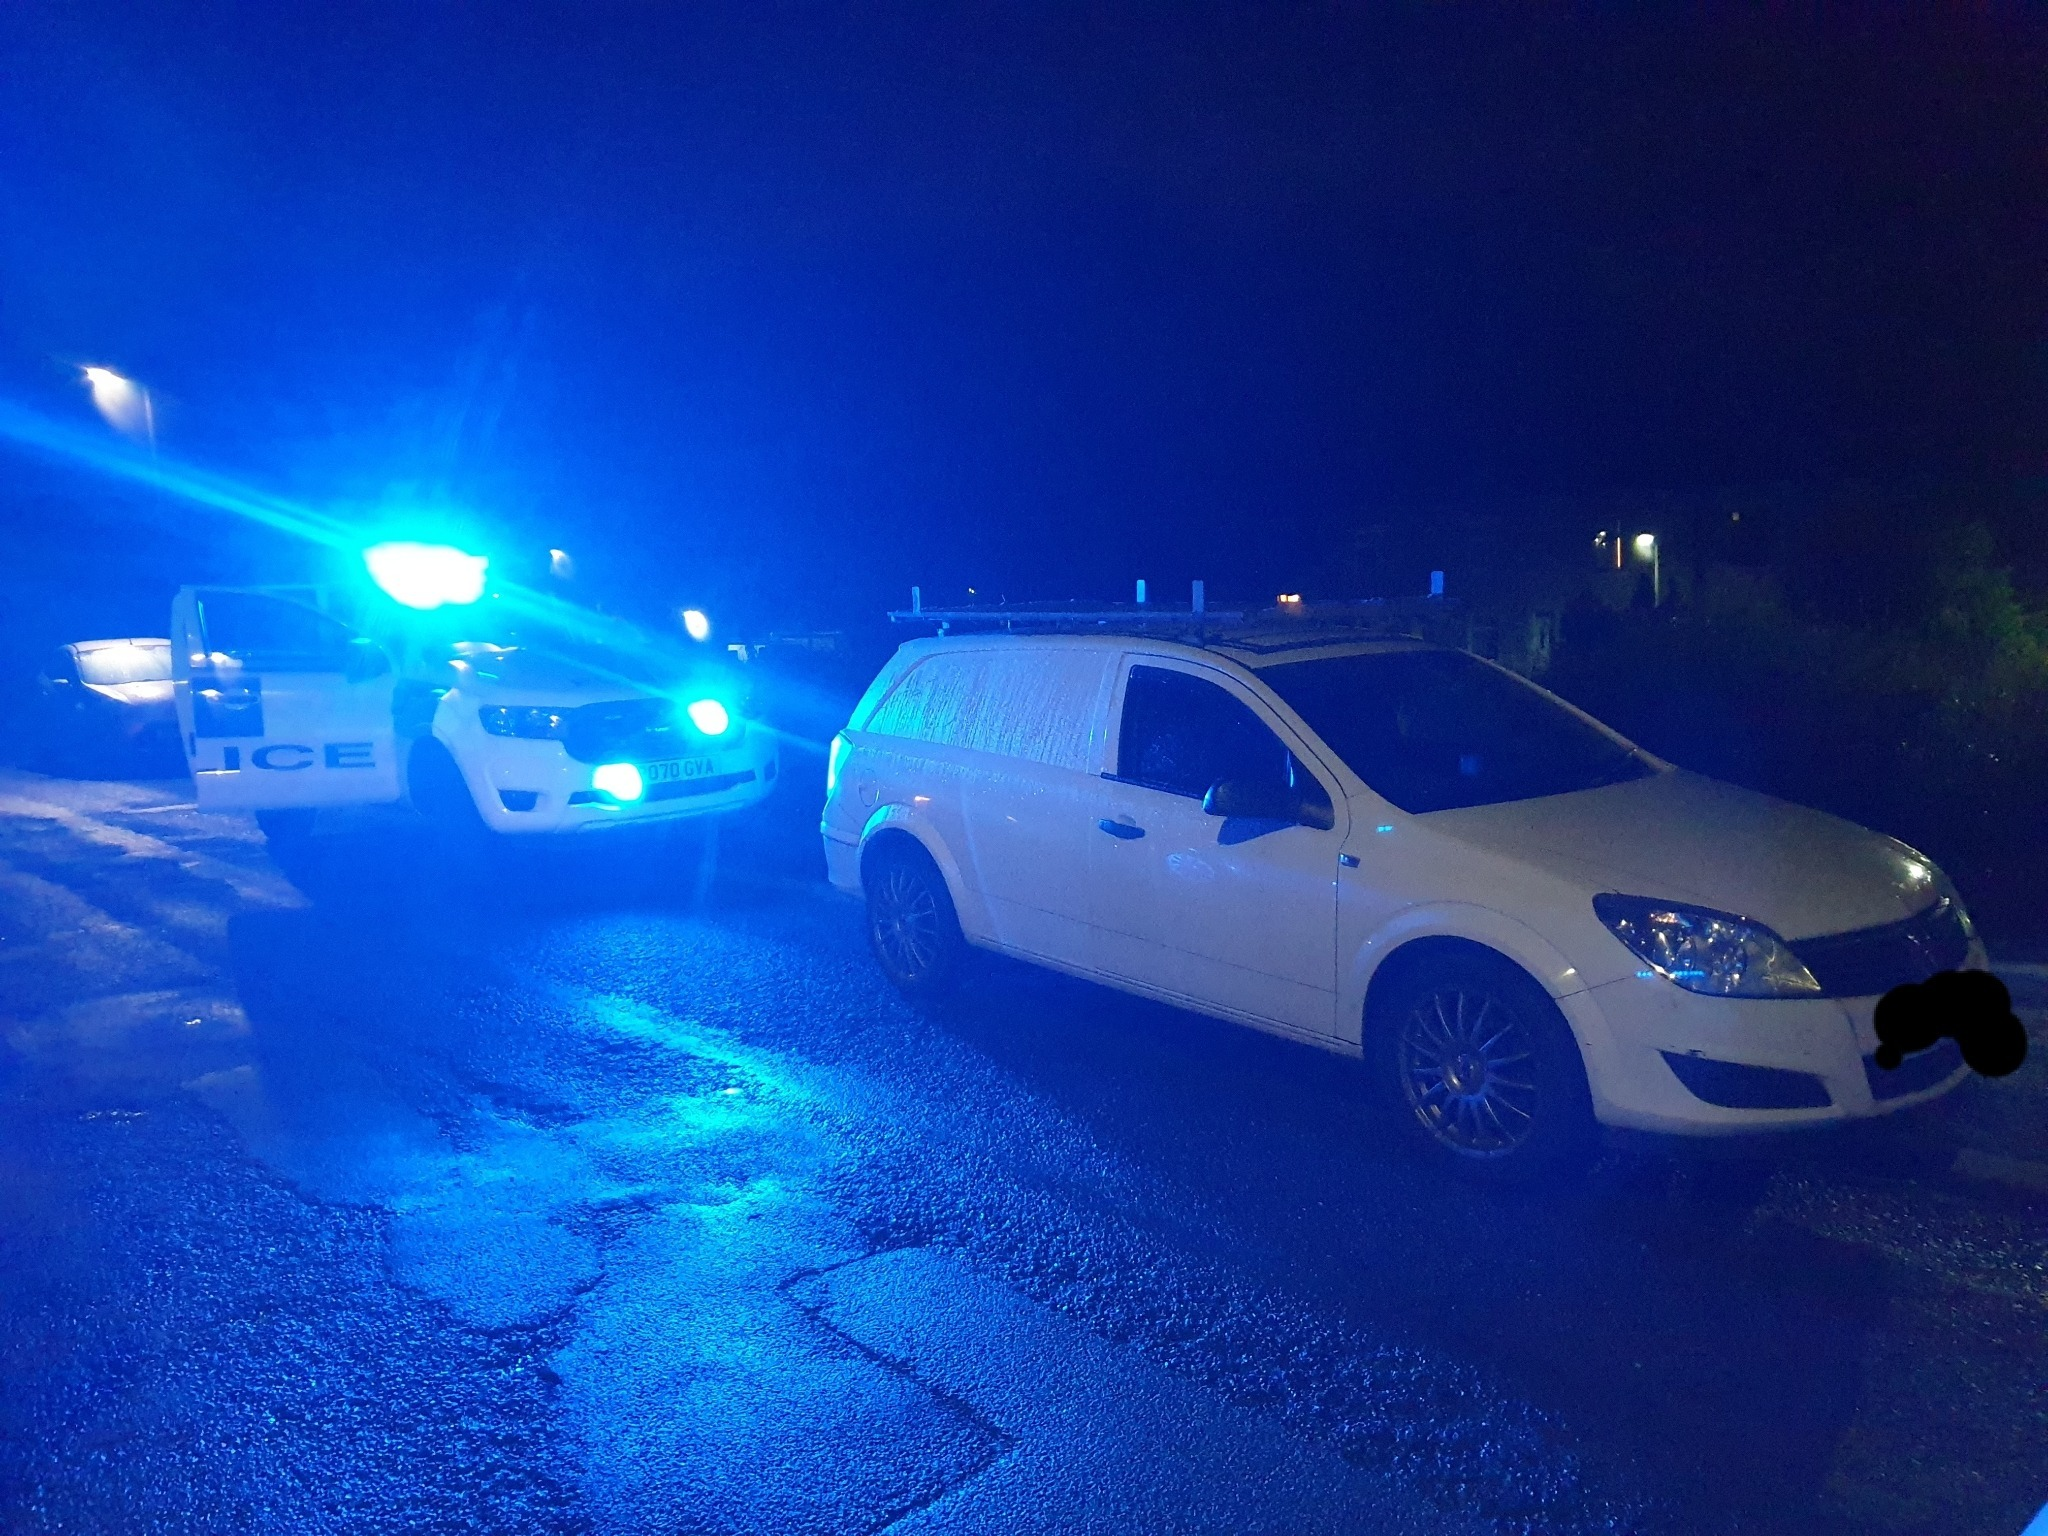 'Erratic' Bacup motorist arrested on suspicion of drink driving and possession of class A drugs